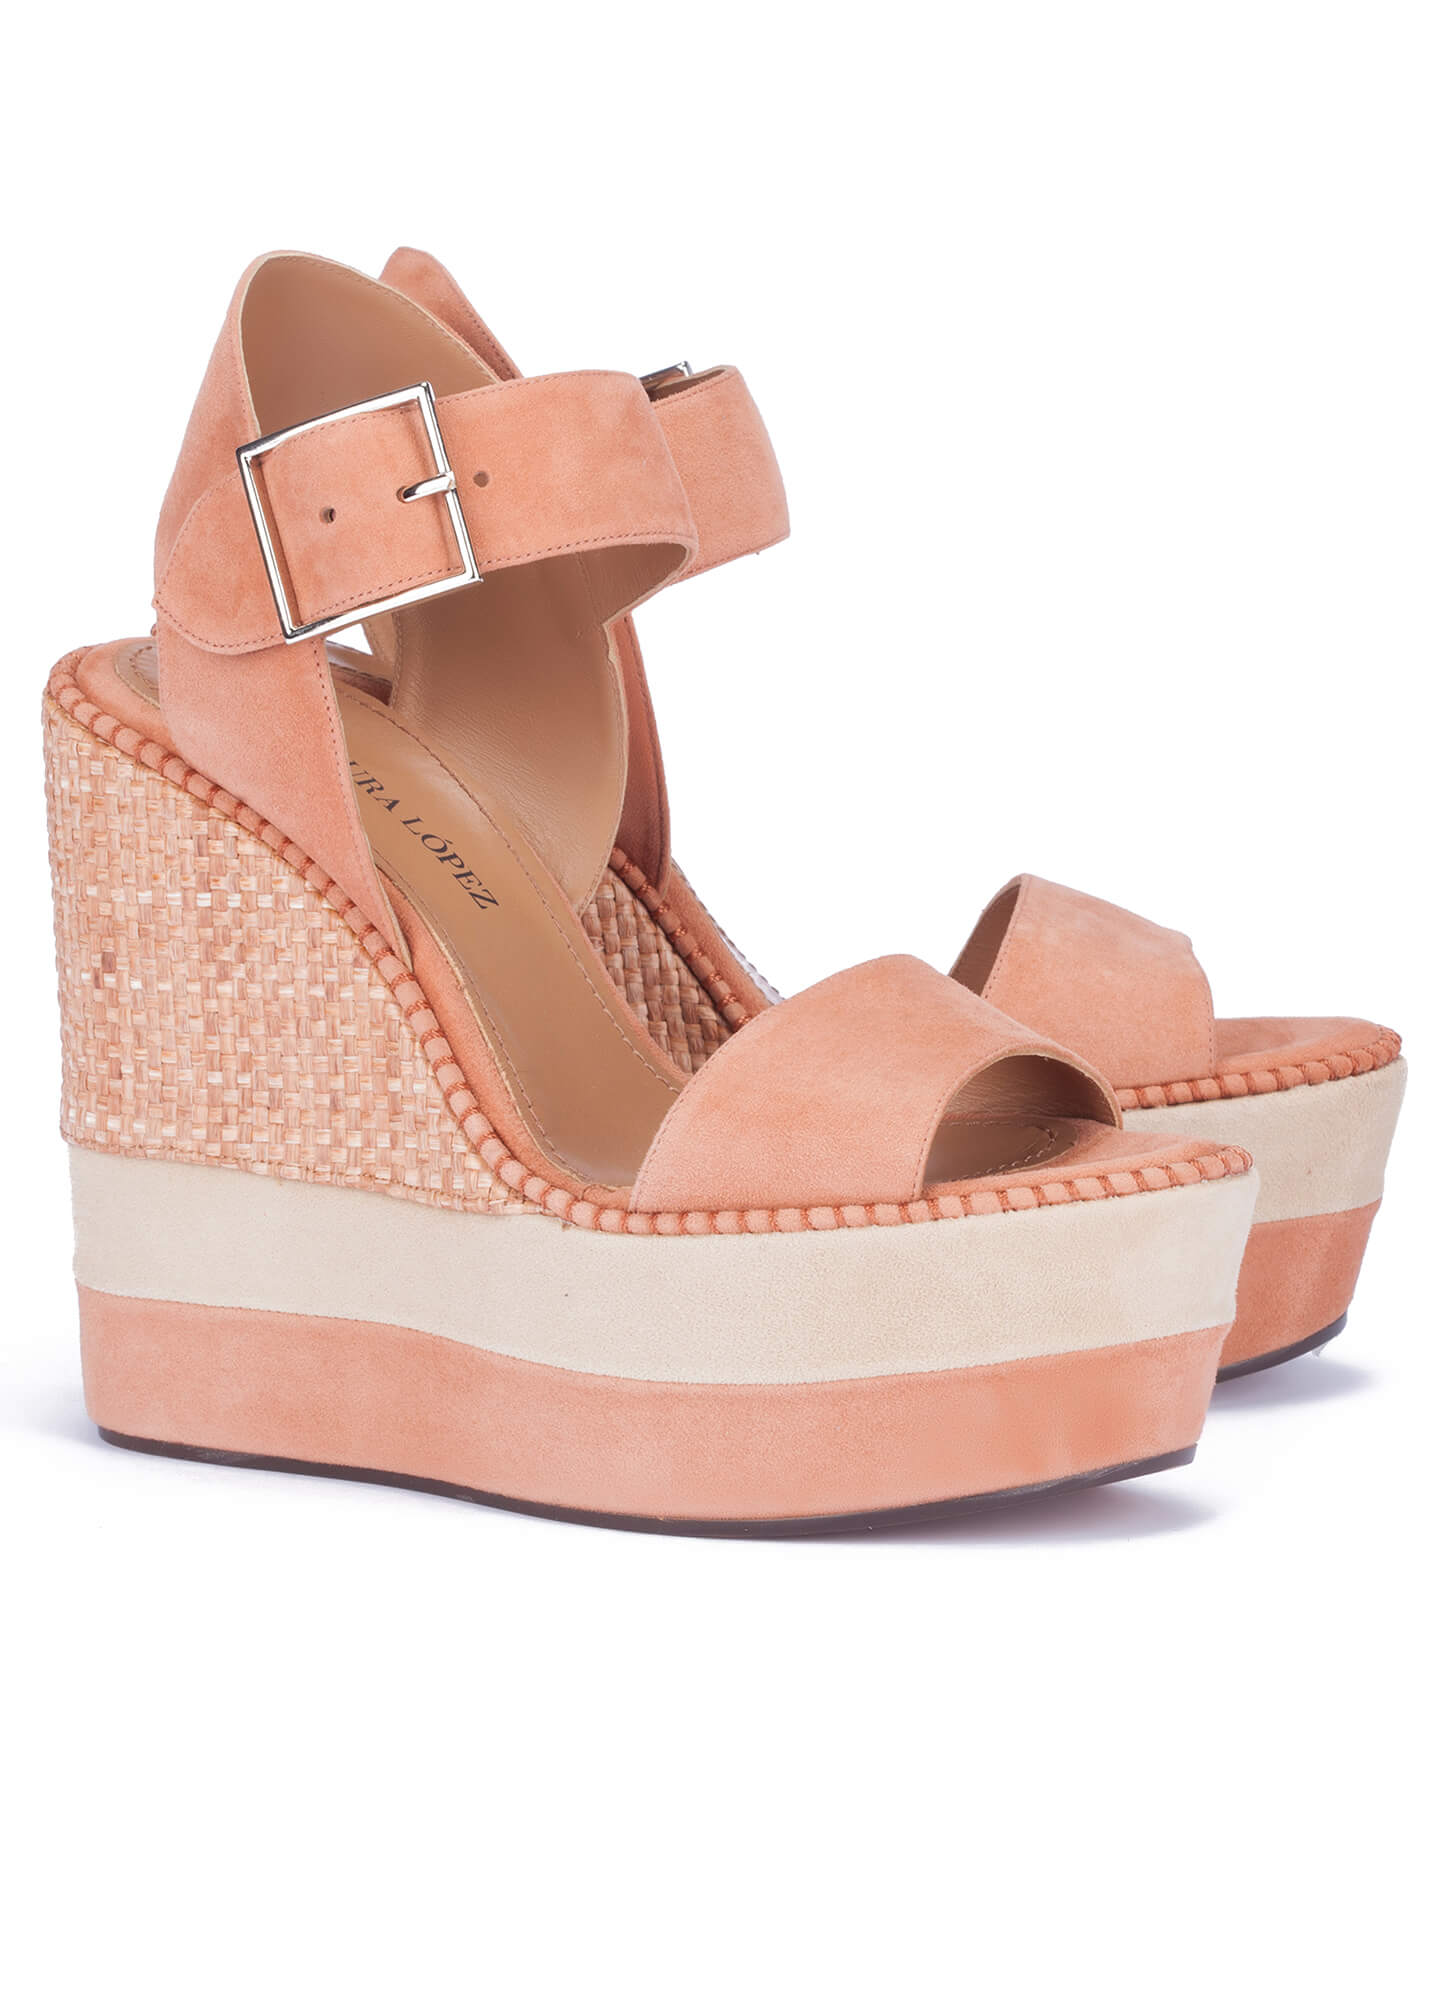 b88c2d08b308 High wedge sandals in old rose suede - online shoe store Pura Lopez ...